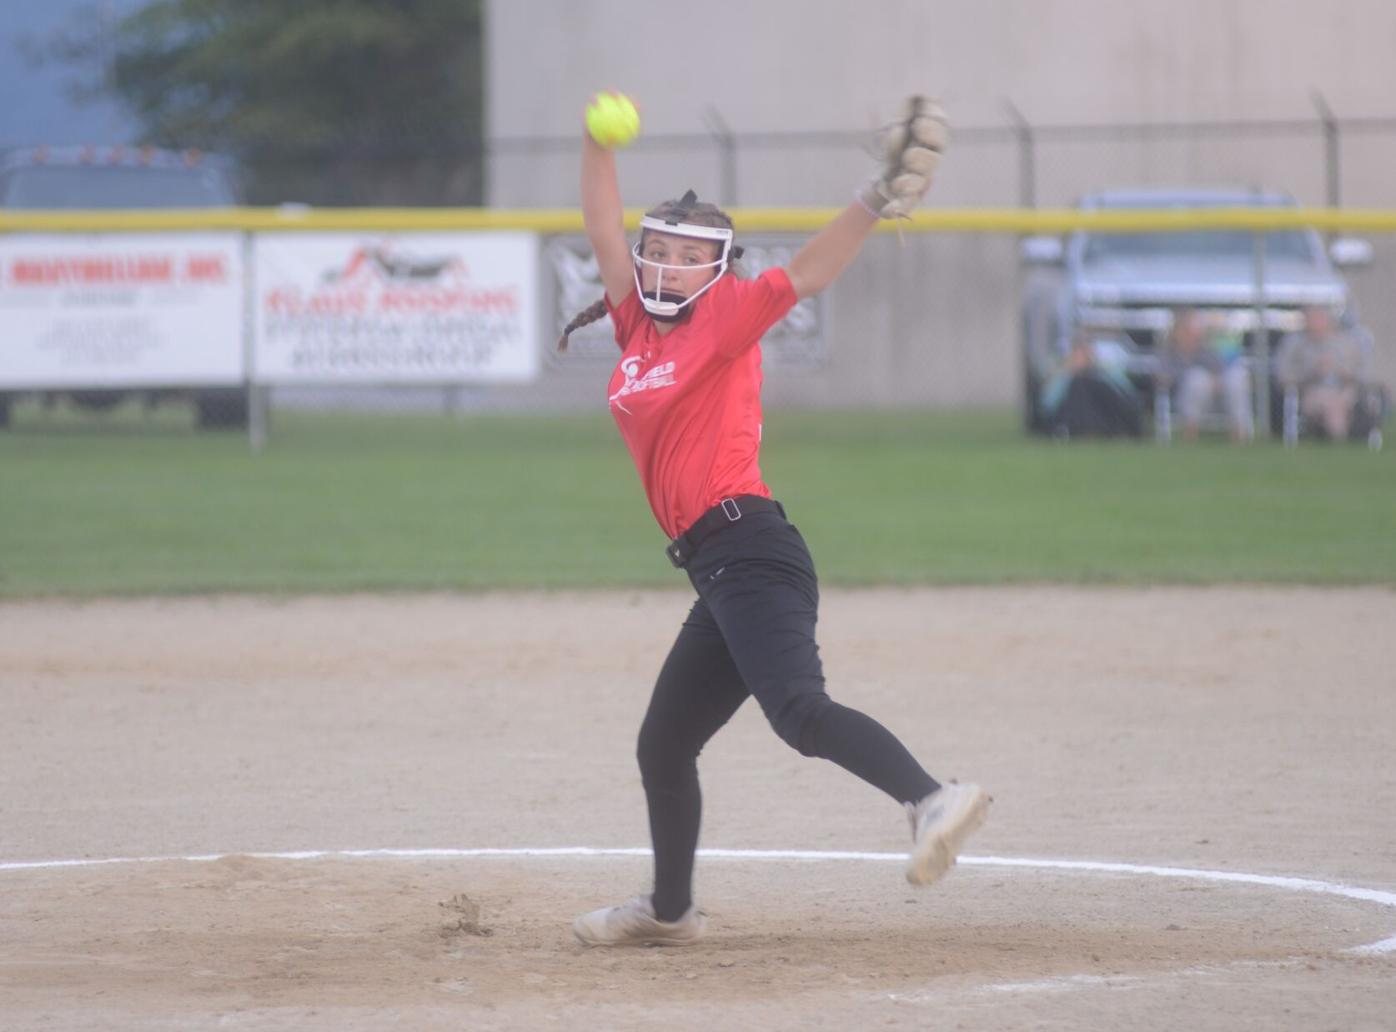 Mia Arpante pitching for Berkshire Fence